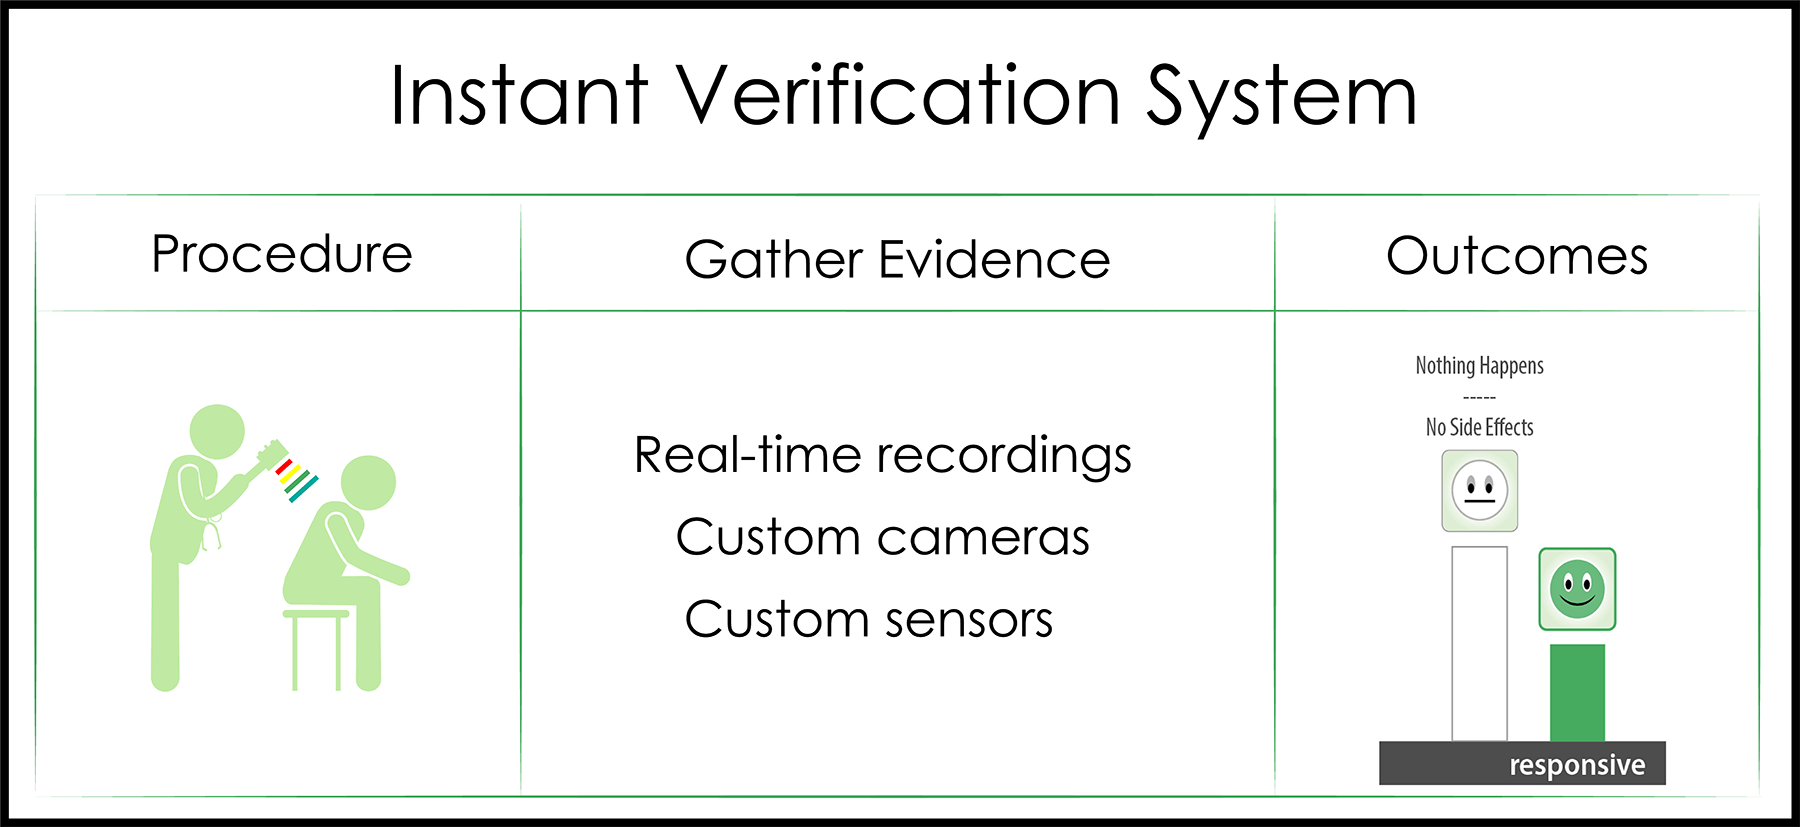 InstantVerification2019-07-23.png